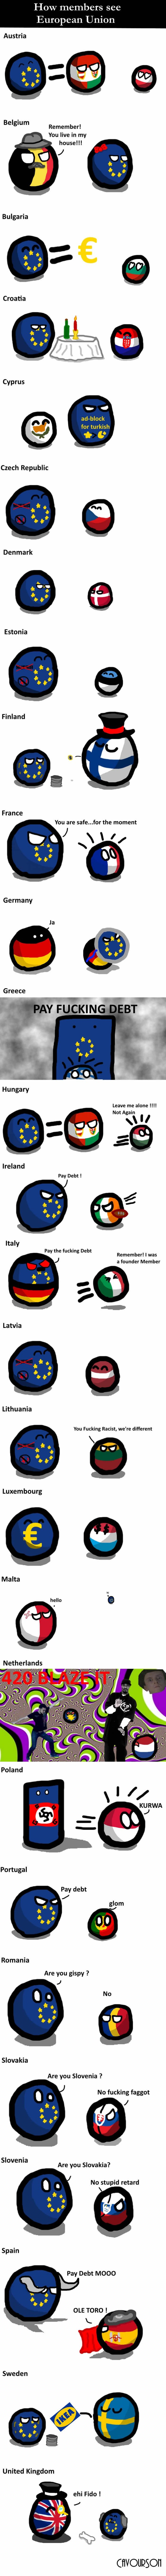 The European Union and its members